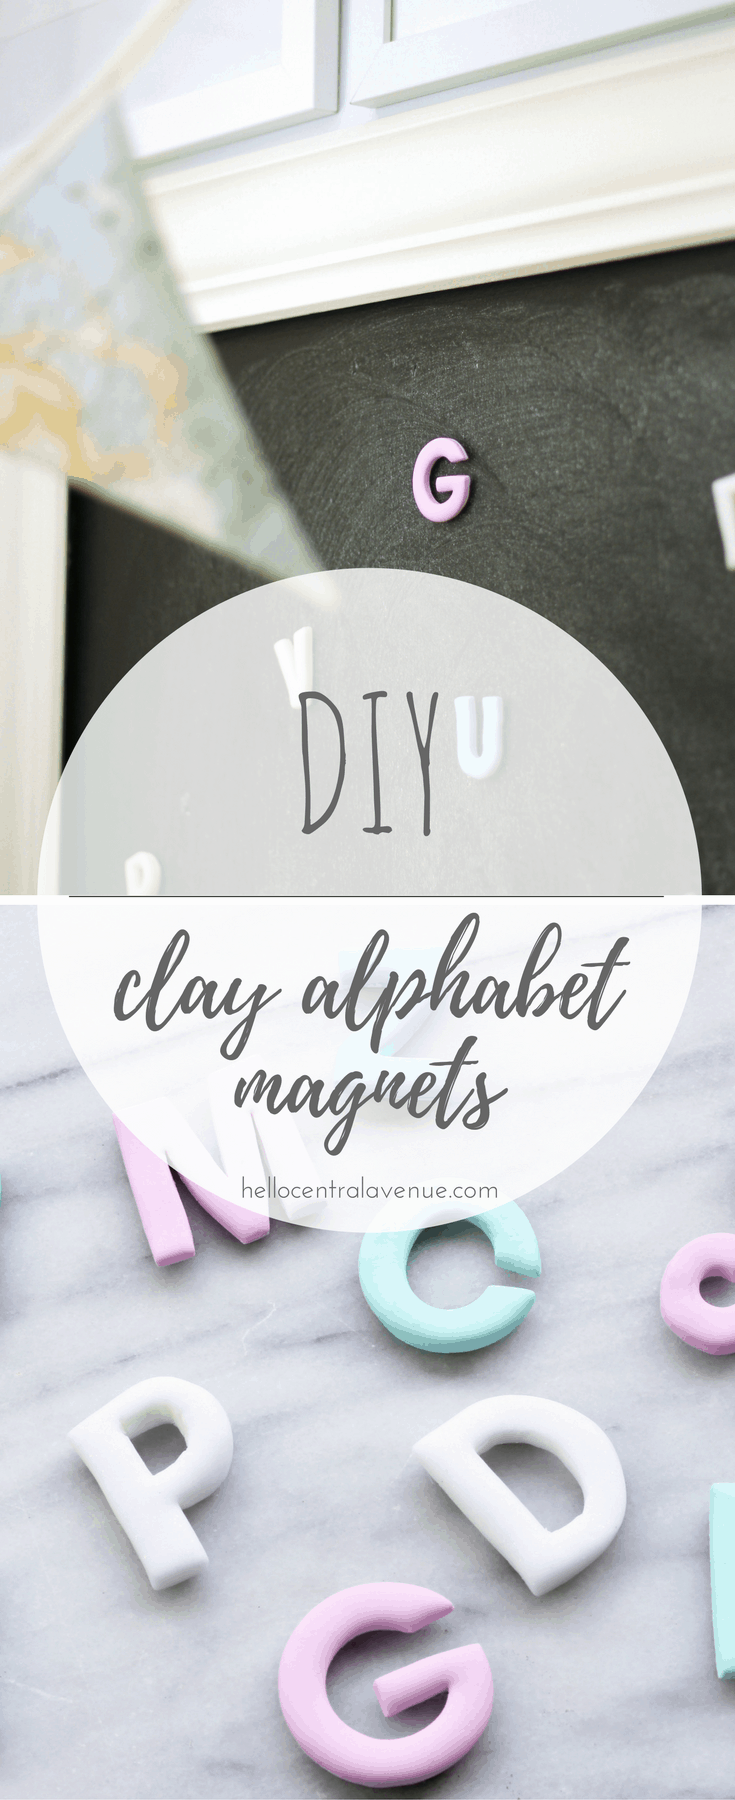 Start the school year off right by making these adorable DIY clay alphabet letter magnets with your kids! They are an easy way to work on fine motor skills!